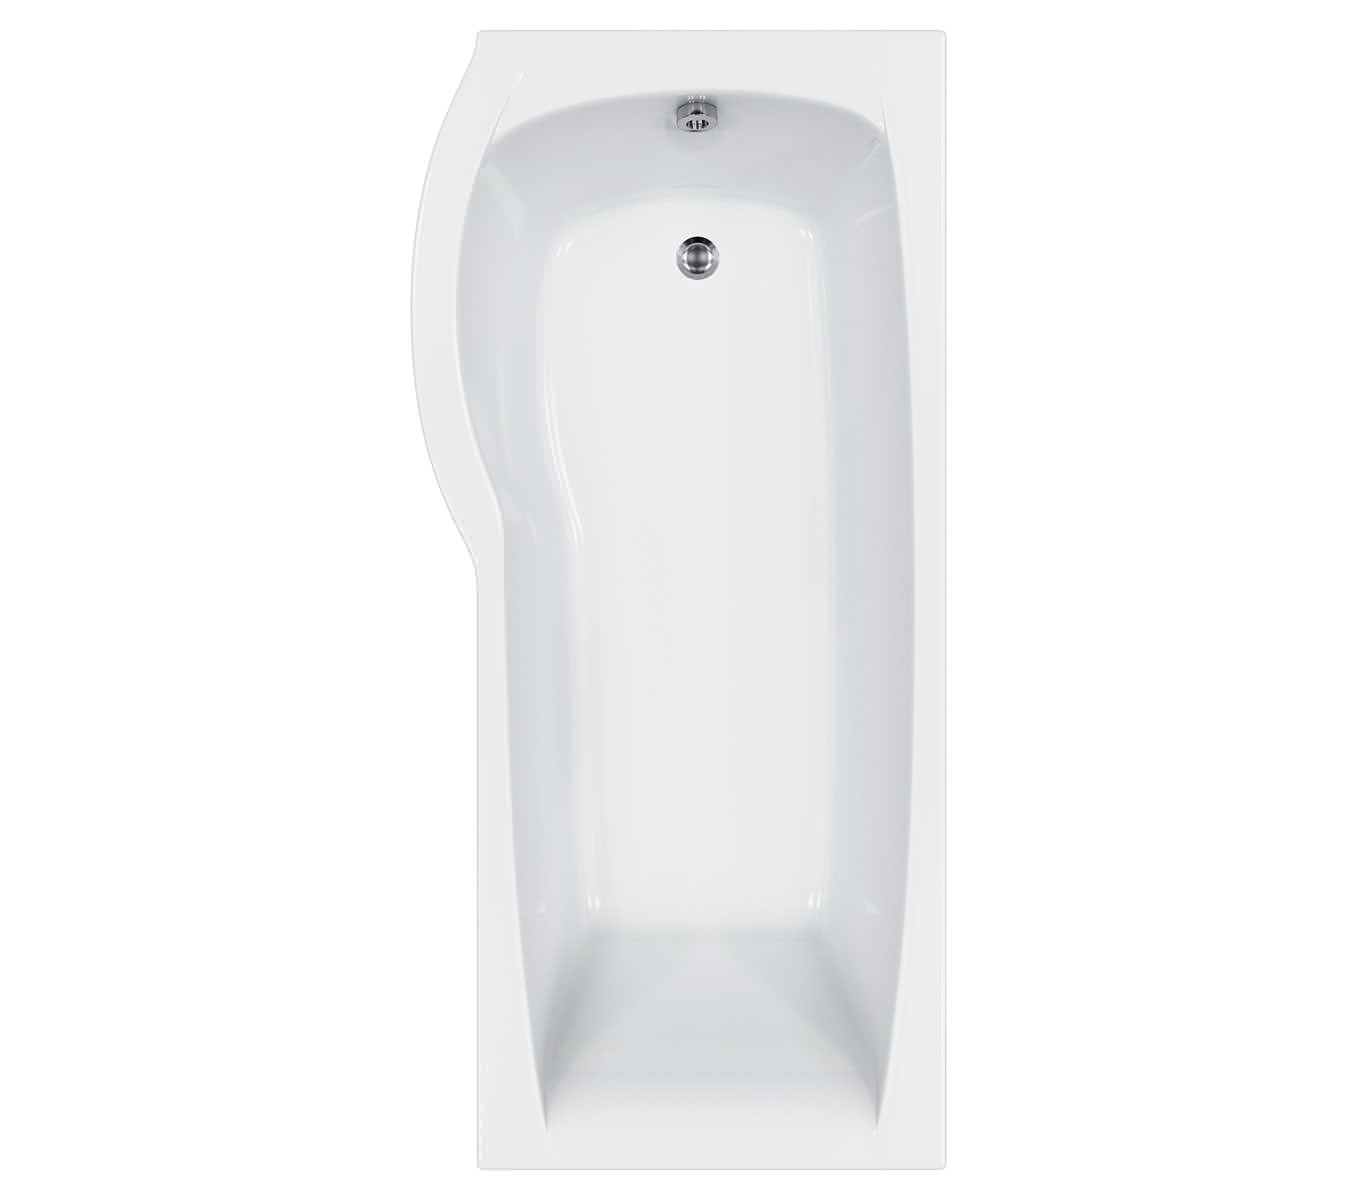 carron delta shower bath 1700 x 800mm cabdesb175palh carron delta 1600x700 800mm shower bath